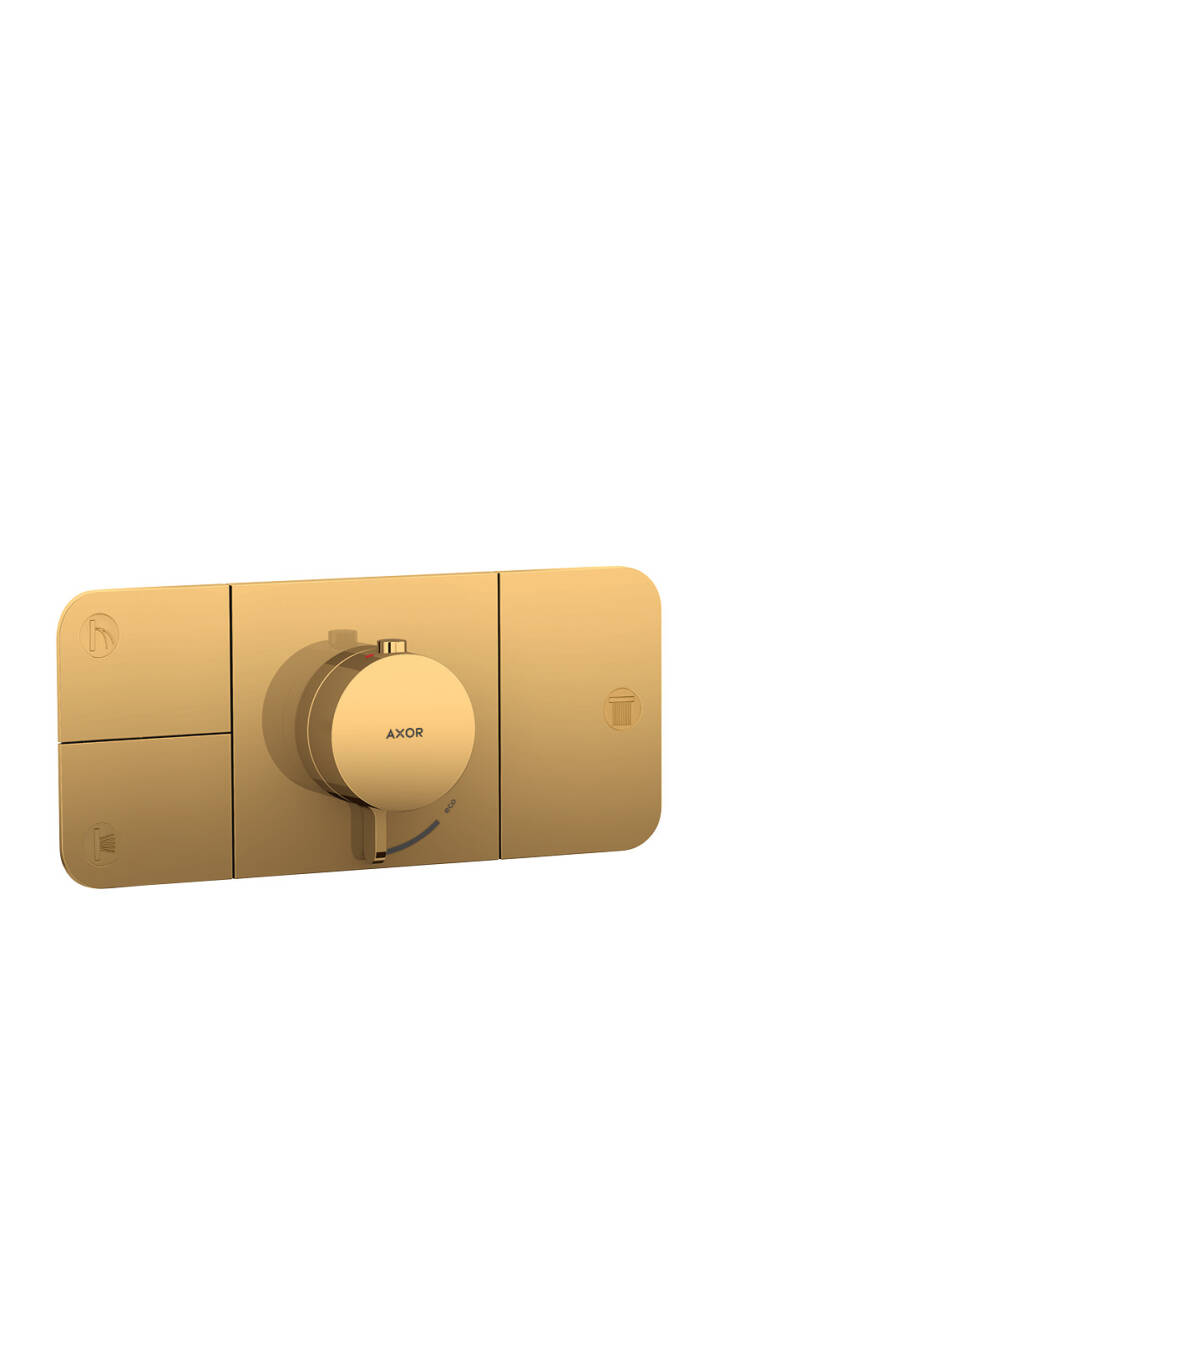 Thermostatic module for concealed installation for 3 functions, Polished Gold Optic, 45713990